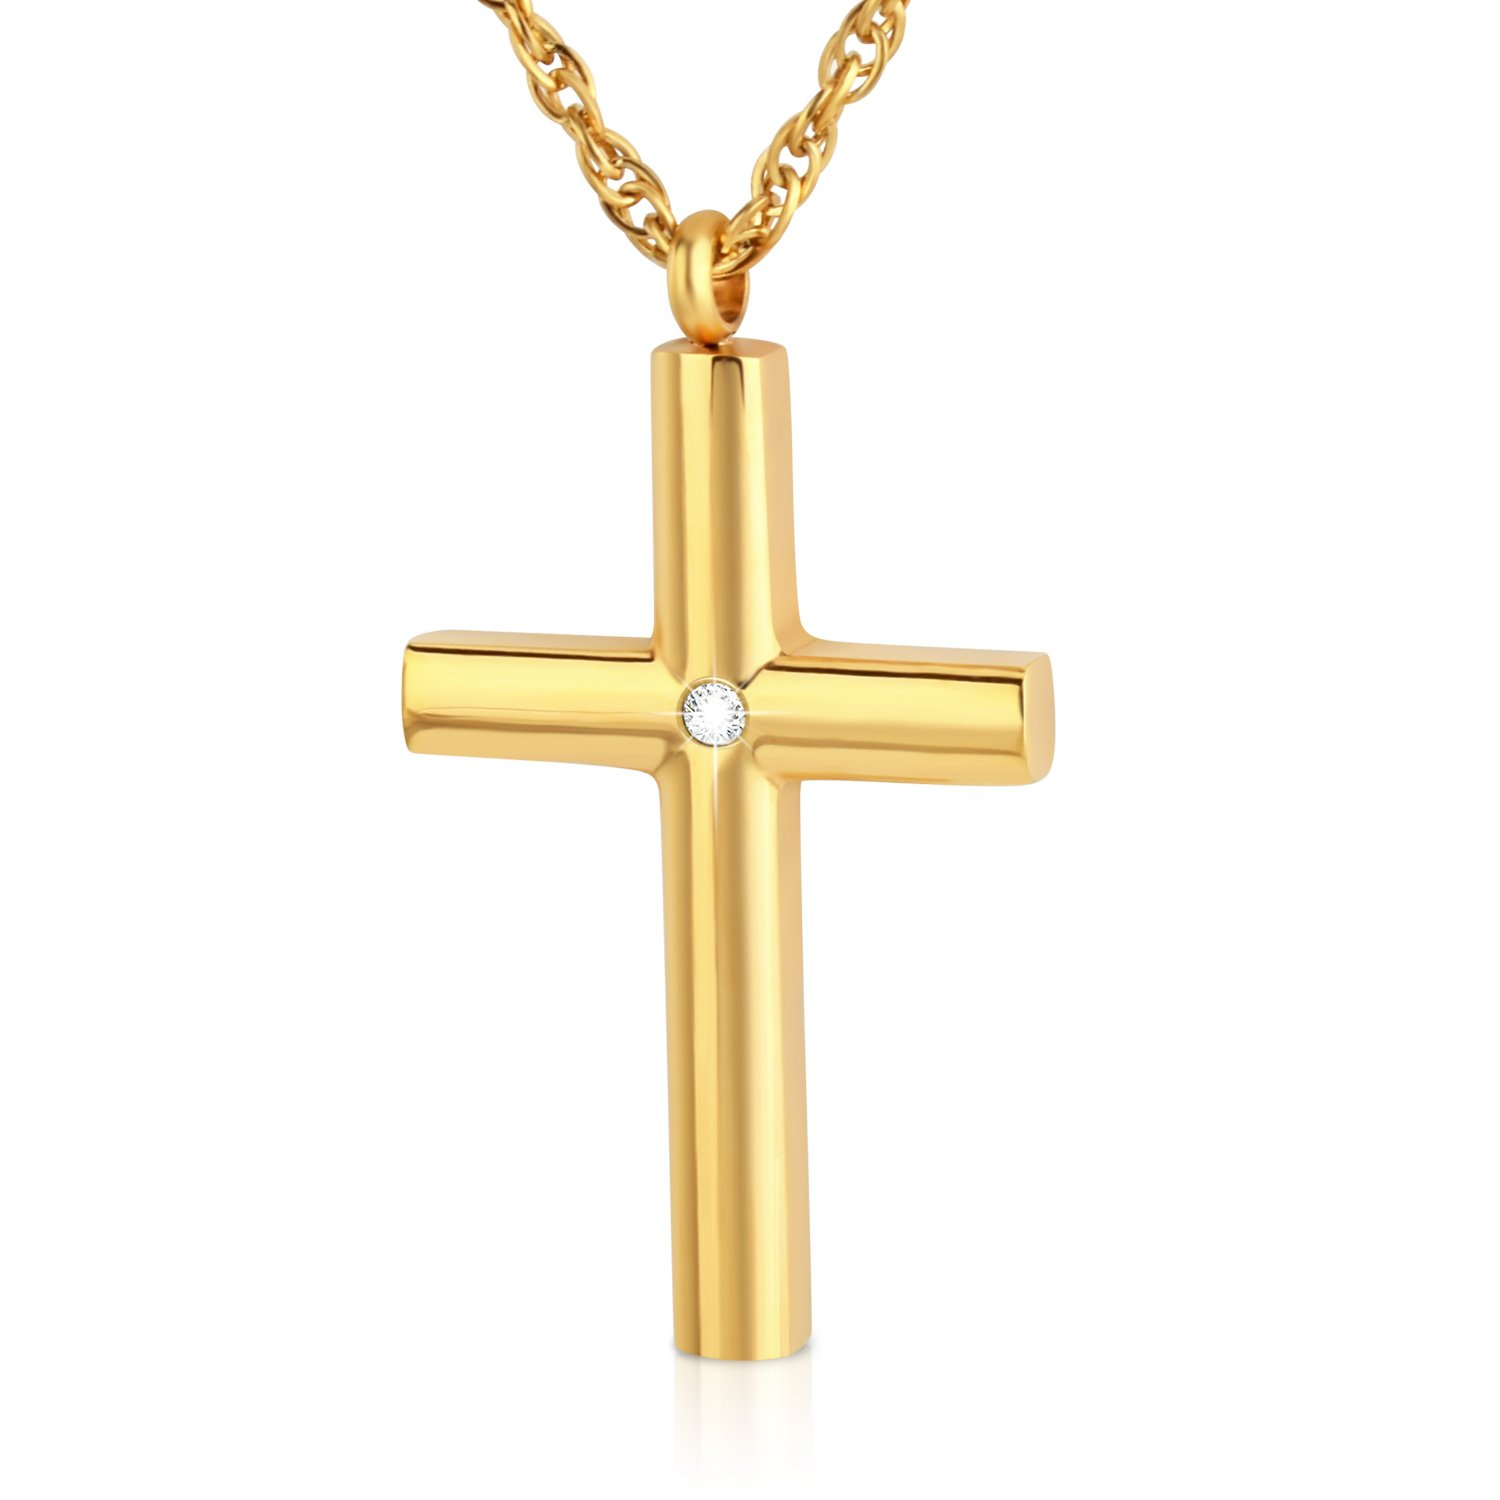 abooxiu Stainless Steel Cross Pendant Necklace With Cubic Zirconia Stone for Men Women Unisex 3 Colors